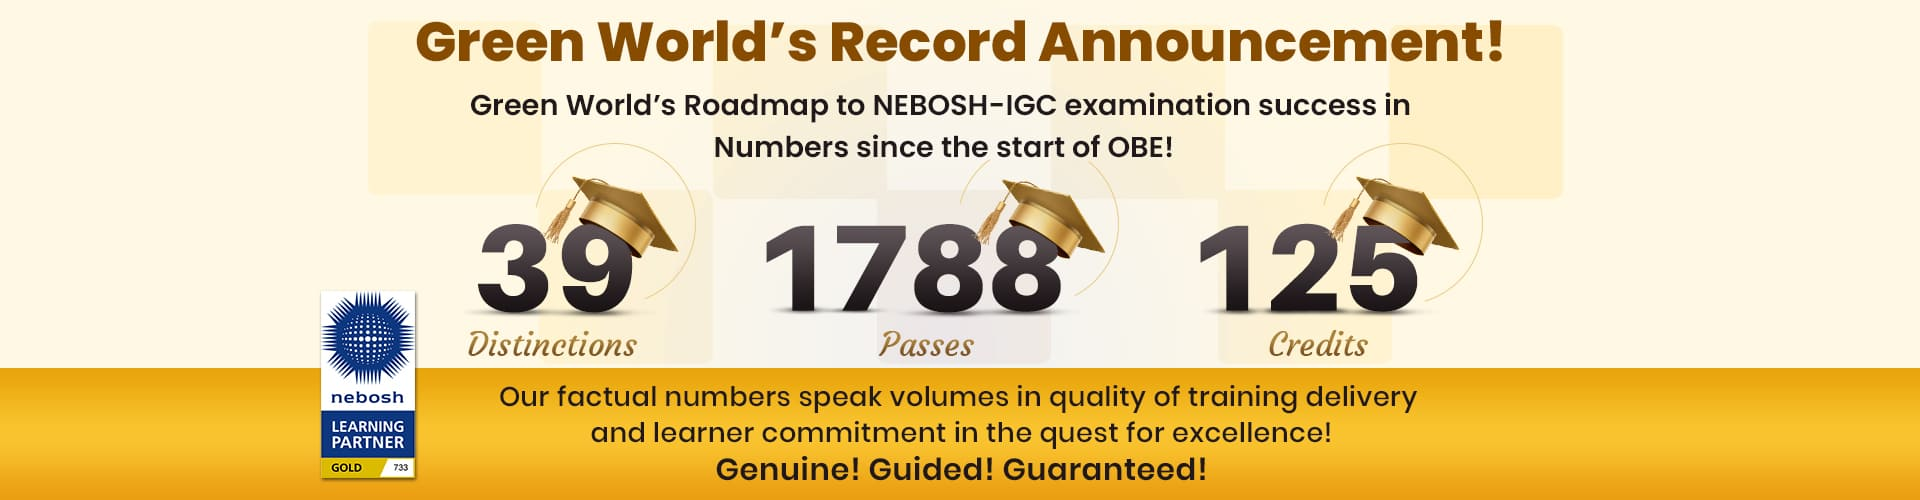 Green-World's-record-announcement_Banner_2021_coin-1